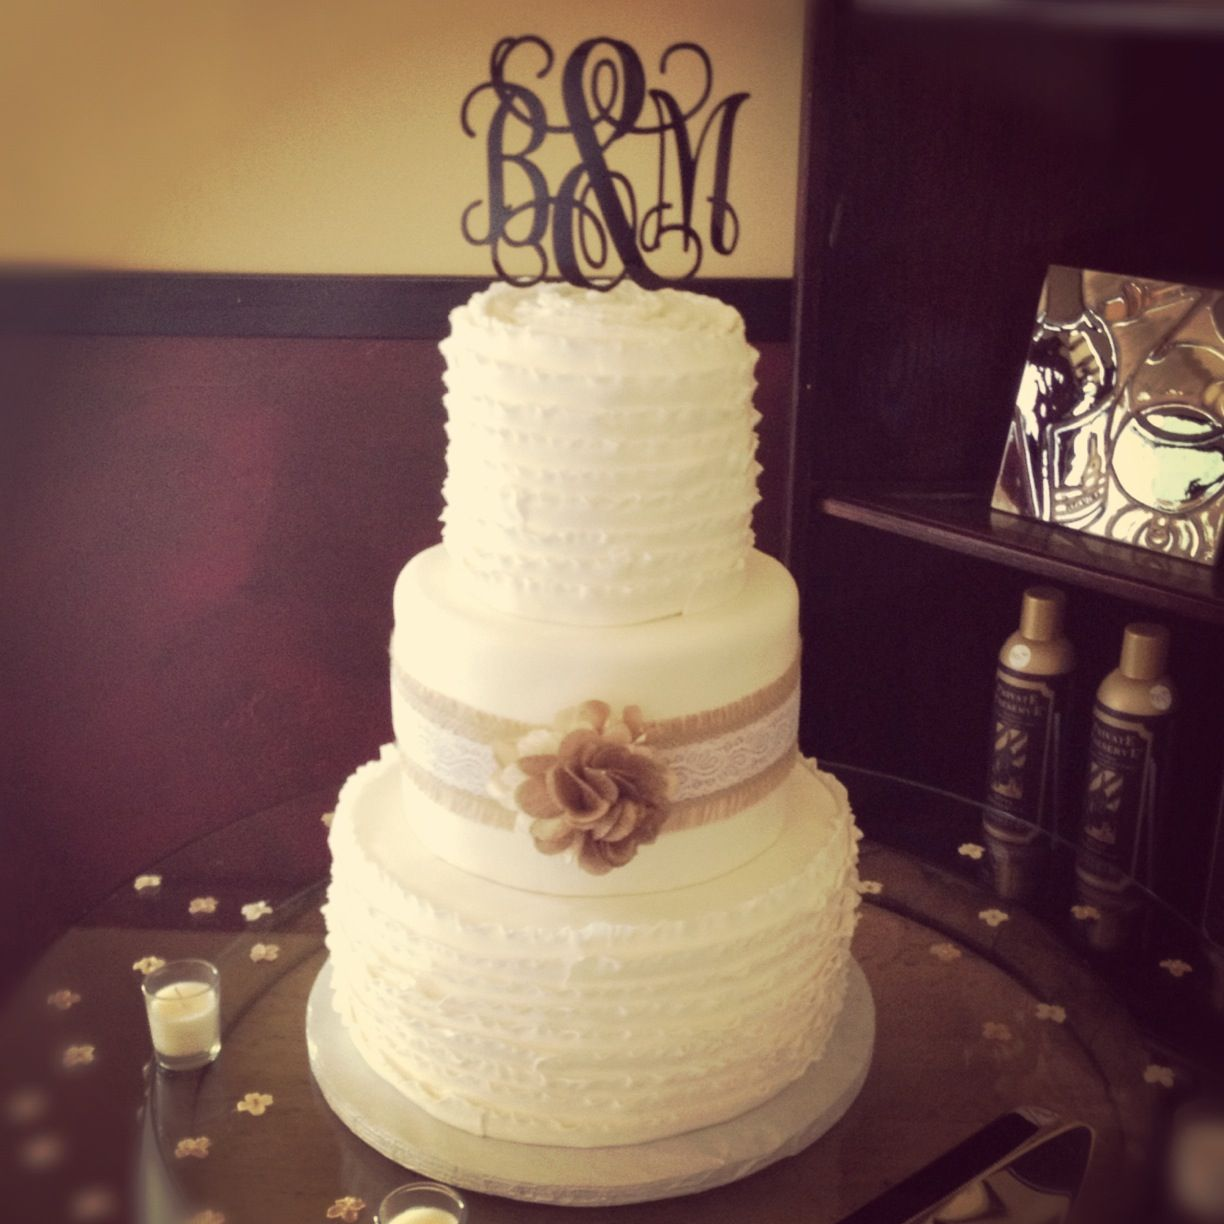 Country wedding cakes pictures - Lovely Idea If You Bring Country Wedding Cake In A Country Themed Wedding Lace Country Wedding Cake Wedding Cake Ideas